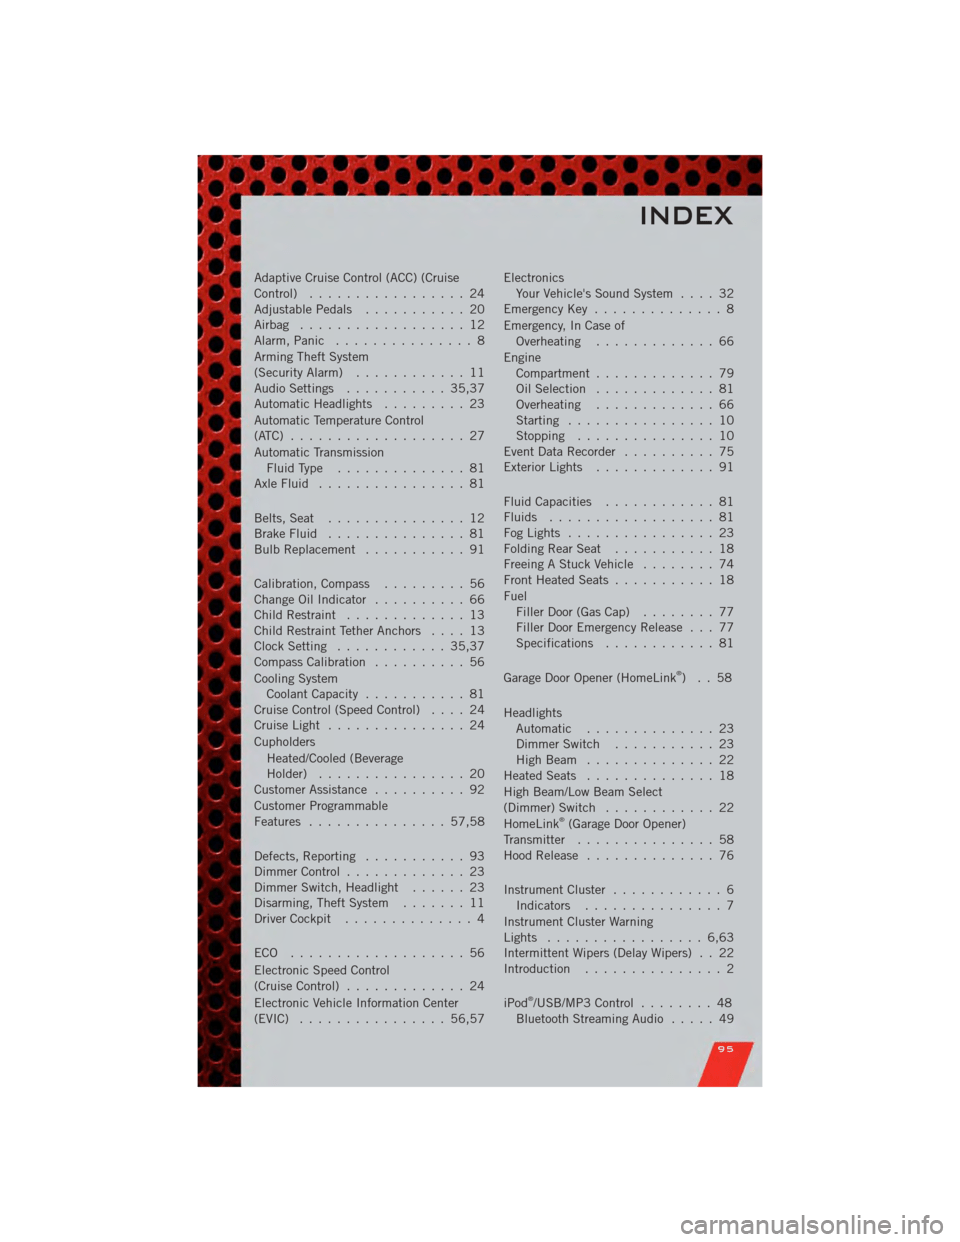 2019 Dodge Charger Oil Change Prices & Cost Estimates